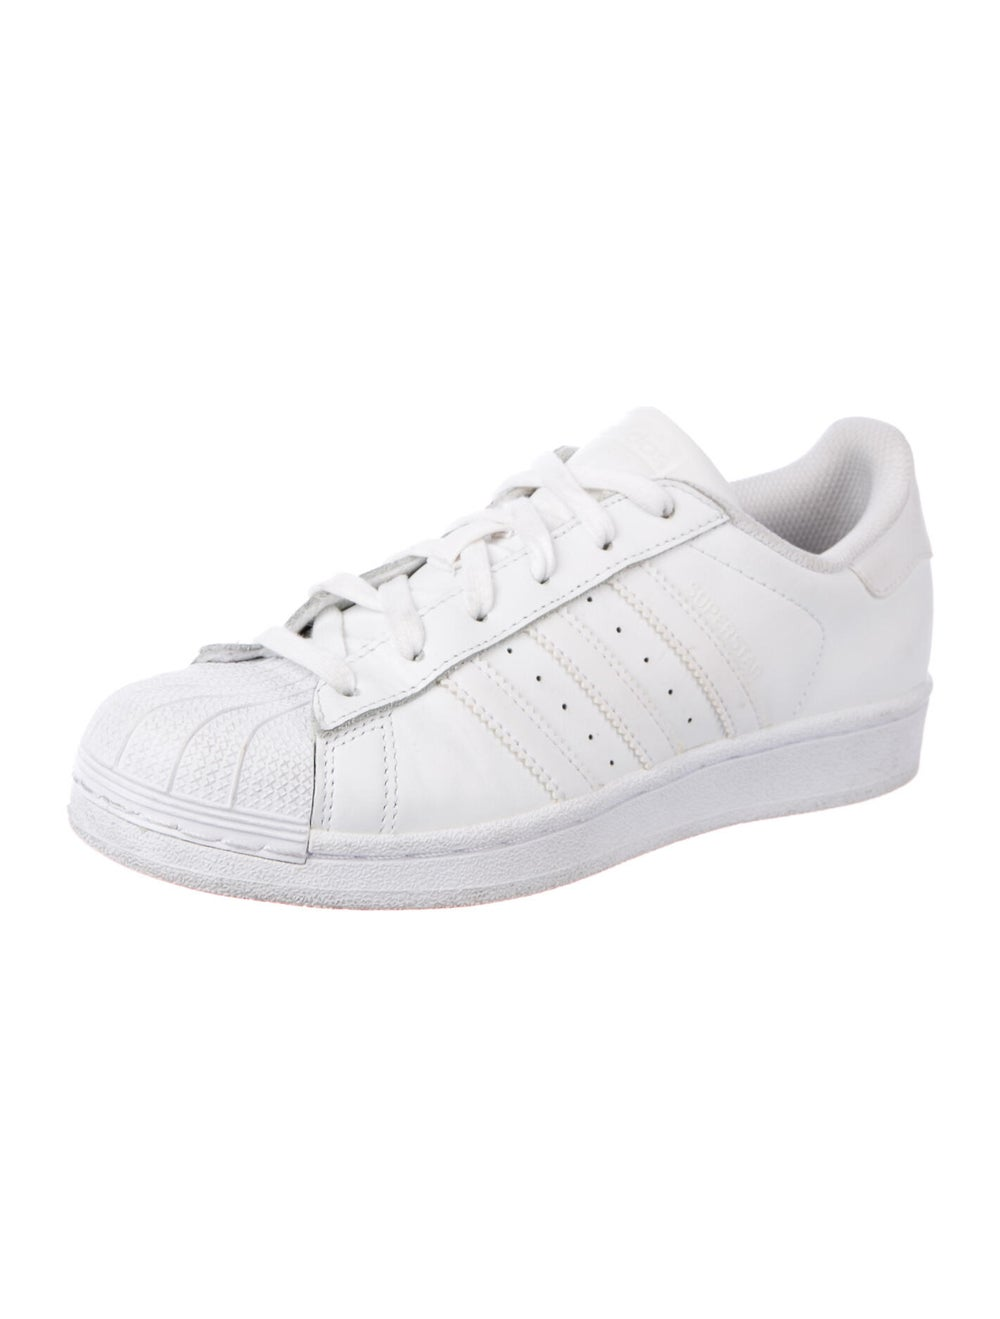 Adidas Superstar Sneakers White - image 2